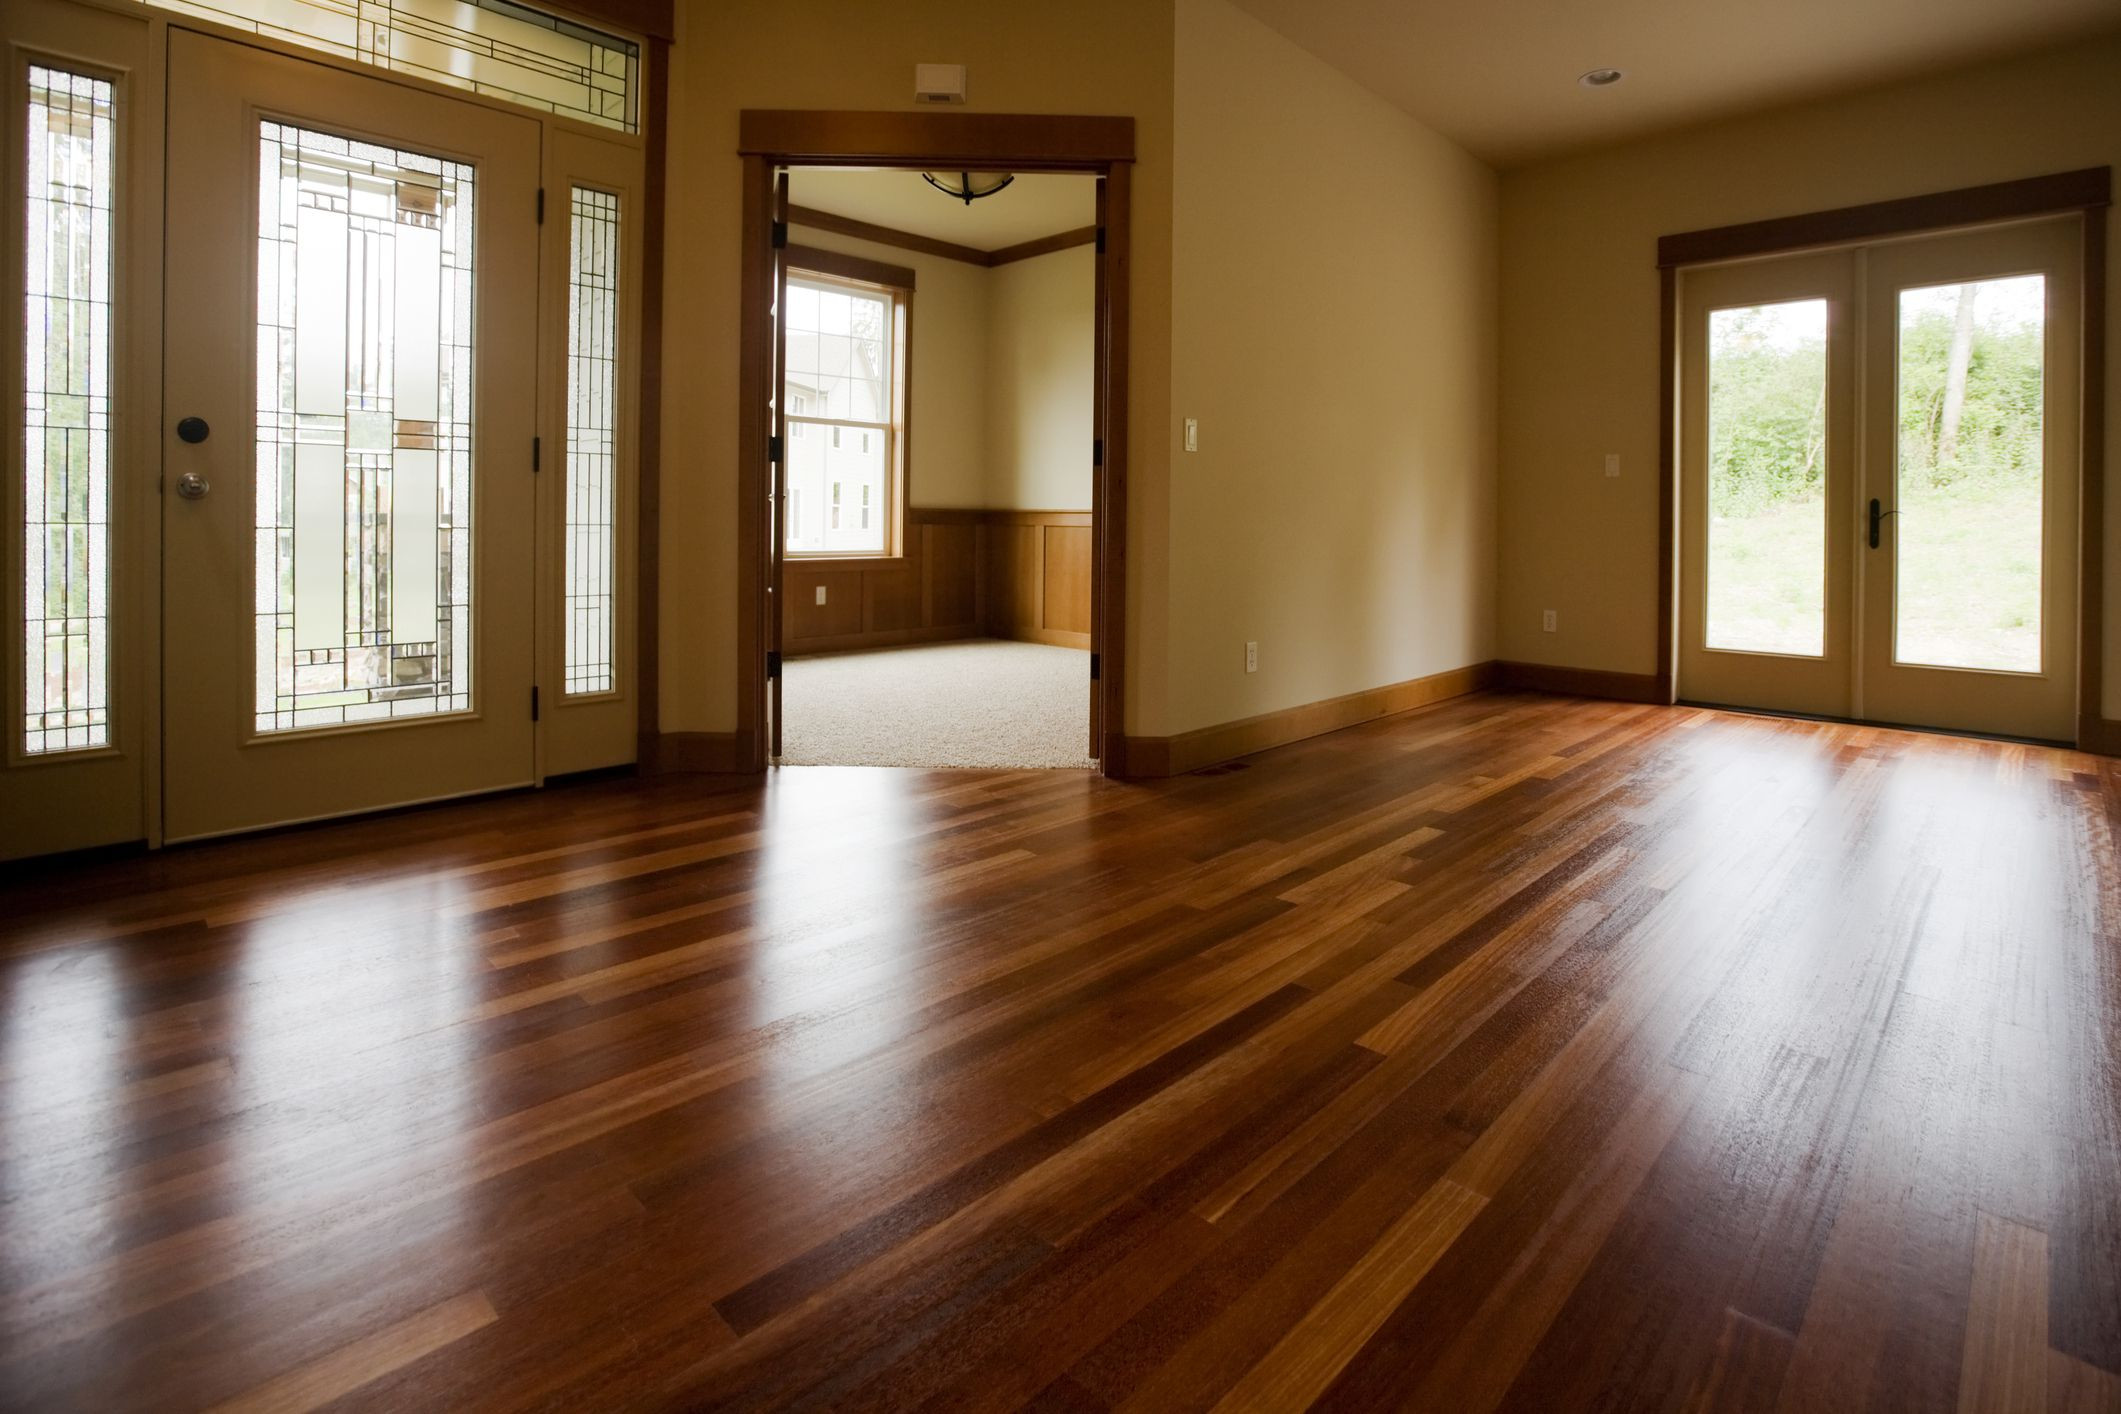 5 red oak hardwood flooring of types of hardwood flooring buyers guide within gettyimages 157332889 5886d8383df78c2ccd65d4e1